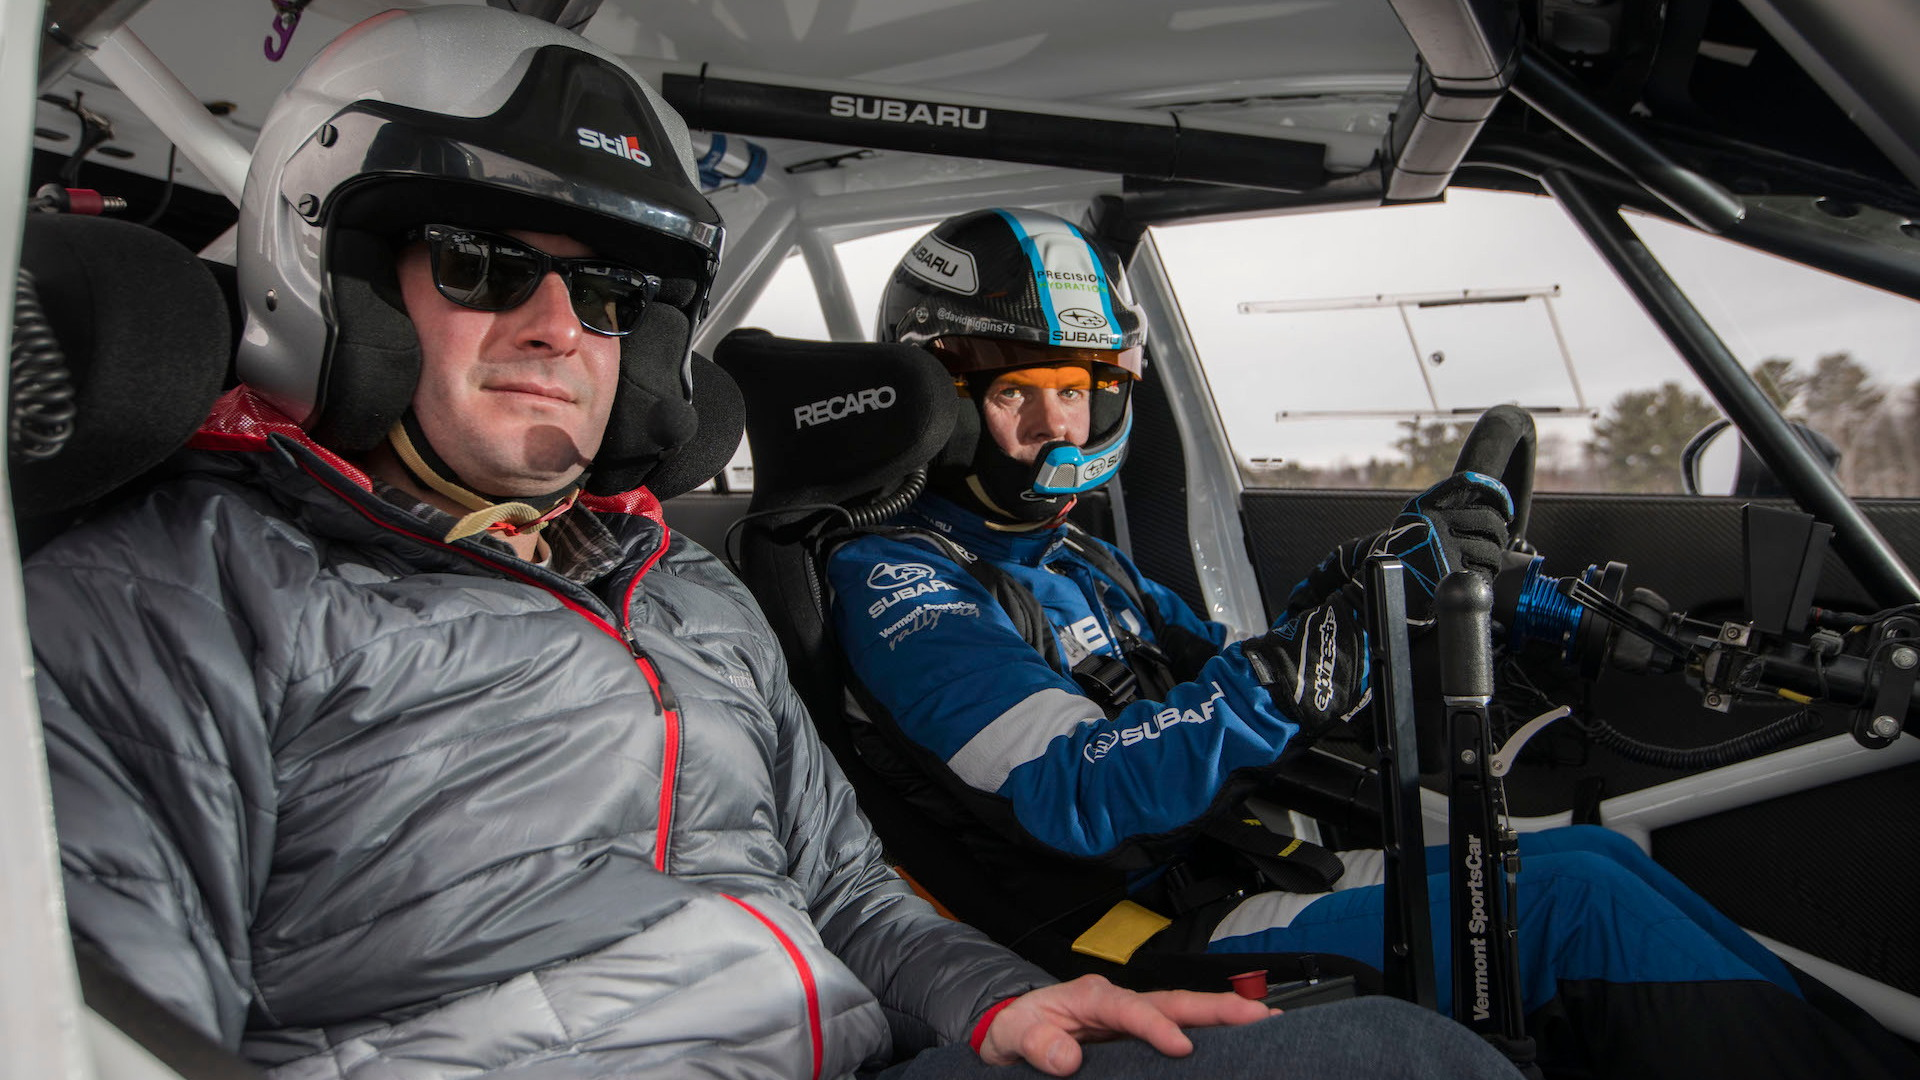 Joel Feder and David Higgins in Subaru WRX race car